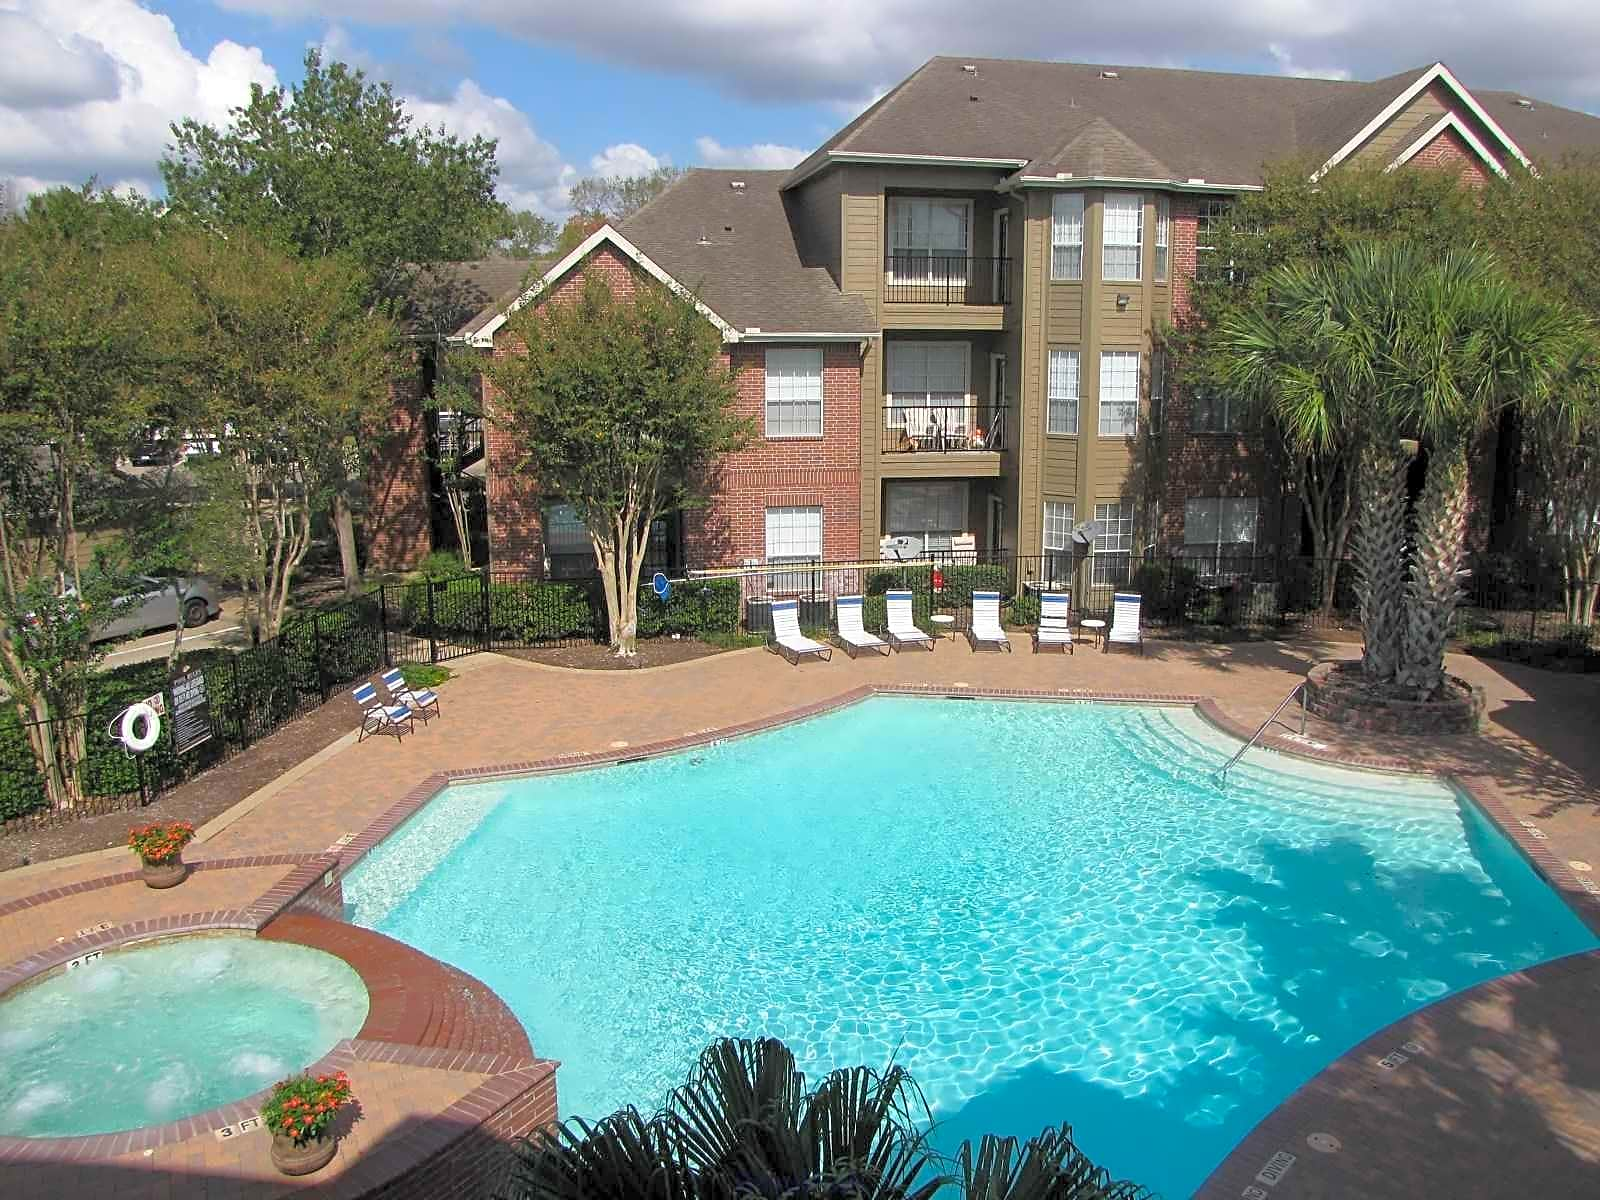 Photo: Sugar Land Apartment for Rent - $1030.00 / month; 1 Bd & 1 Ba